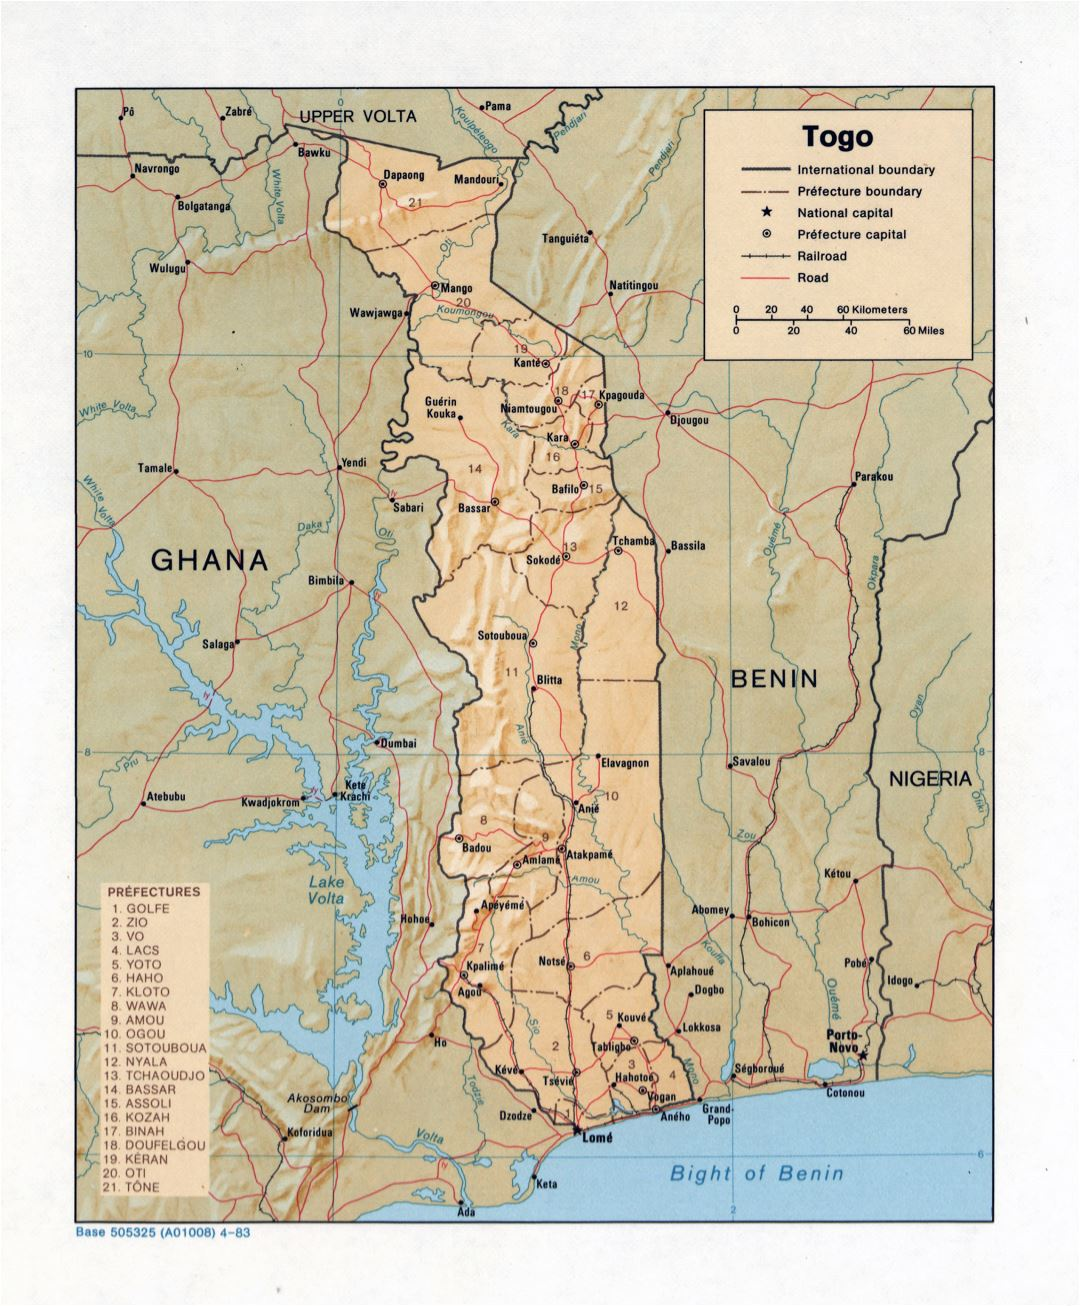 Large detailed political and administrative map of Togo with relief, roads, railroads and major cities - 1983